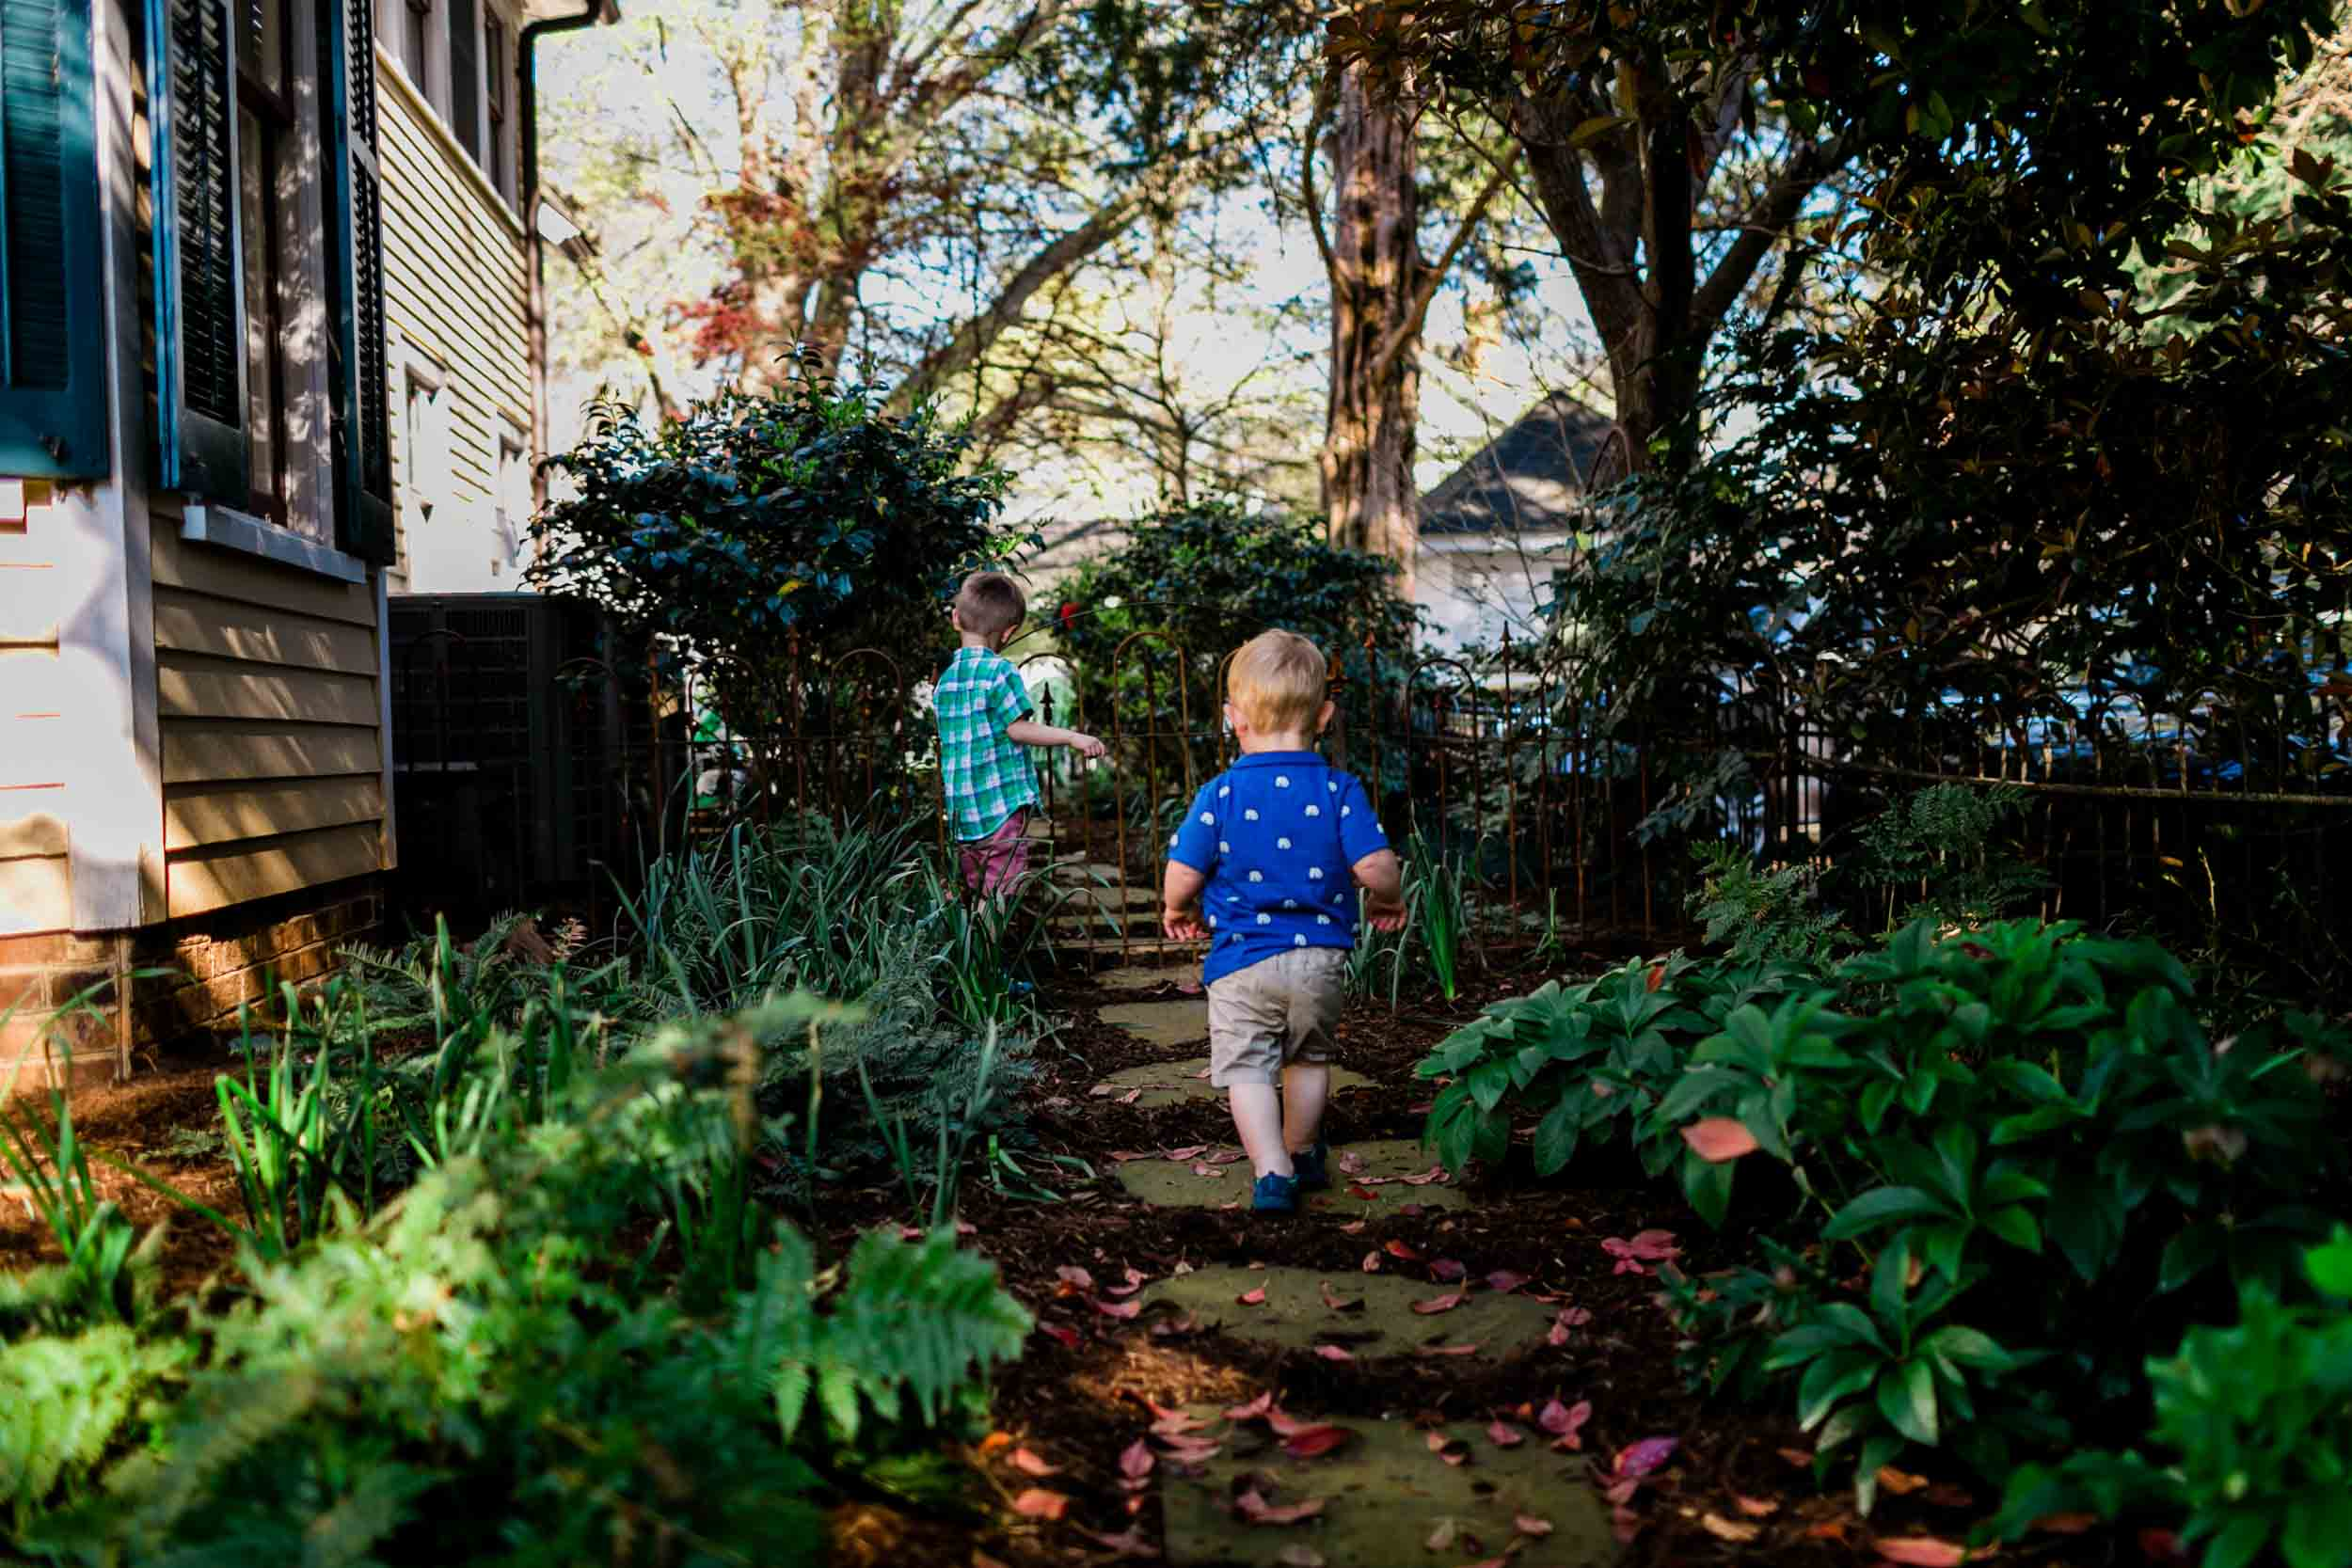 Durham Family Photographer | By G. Lin Photography | Children walking in yard